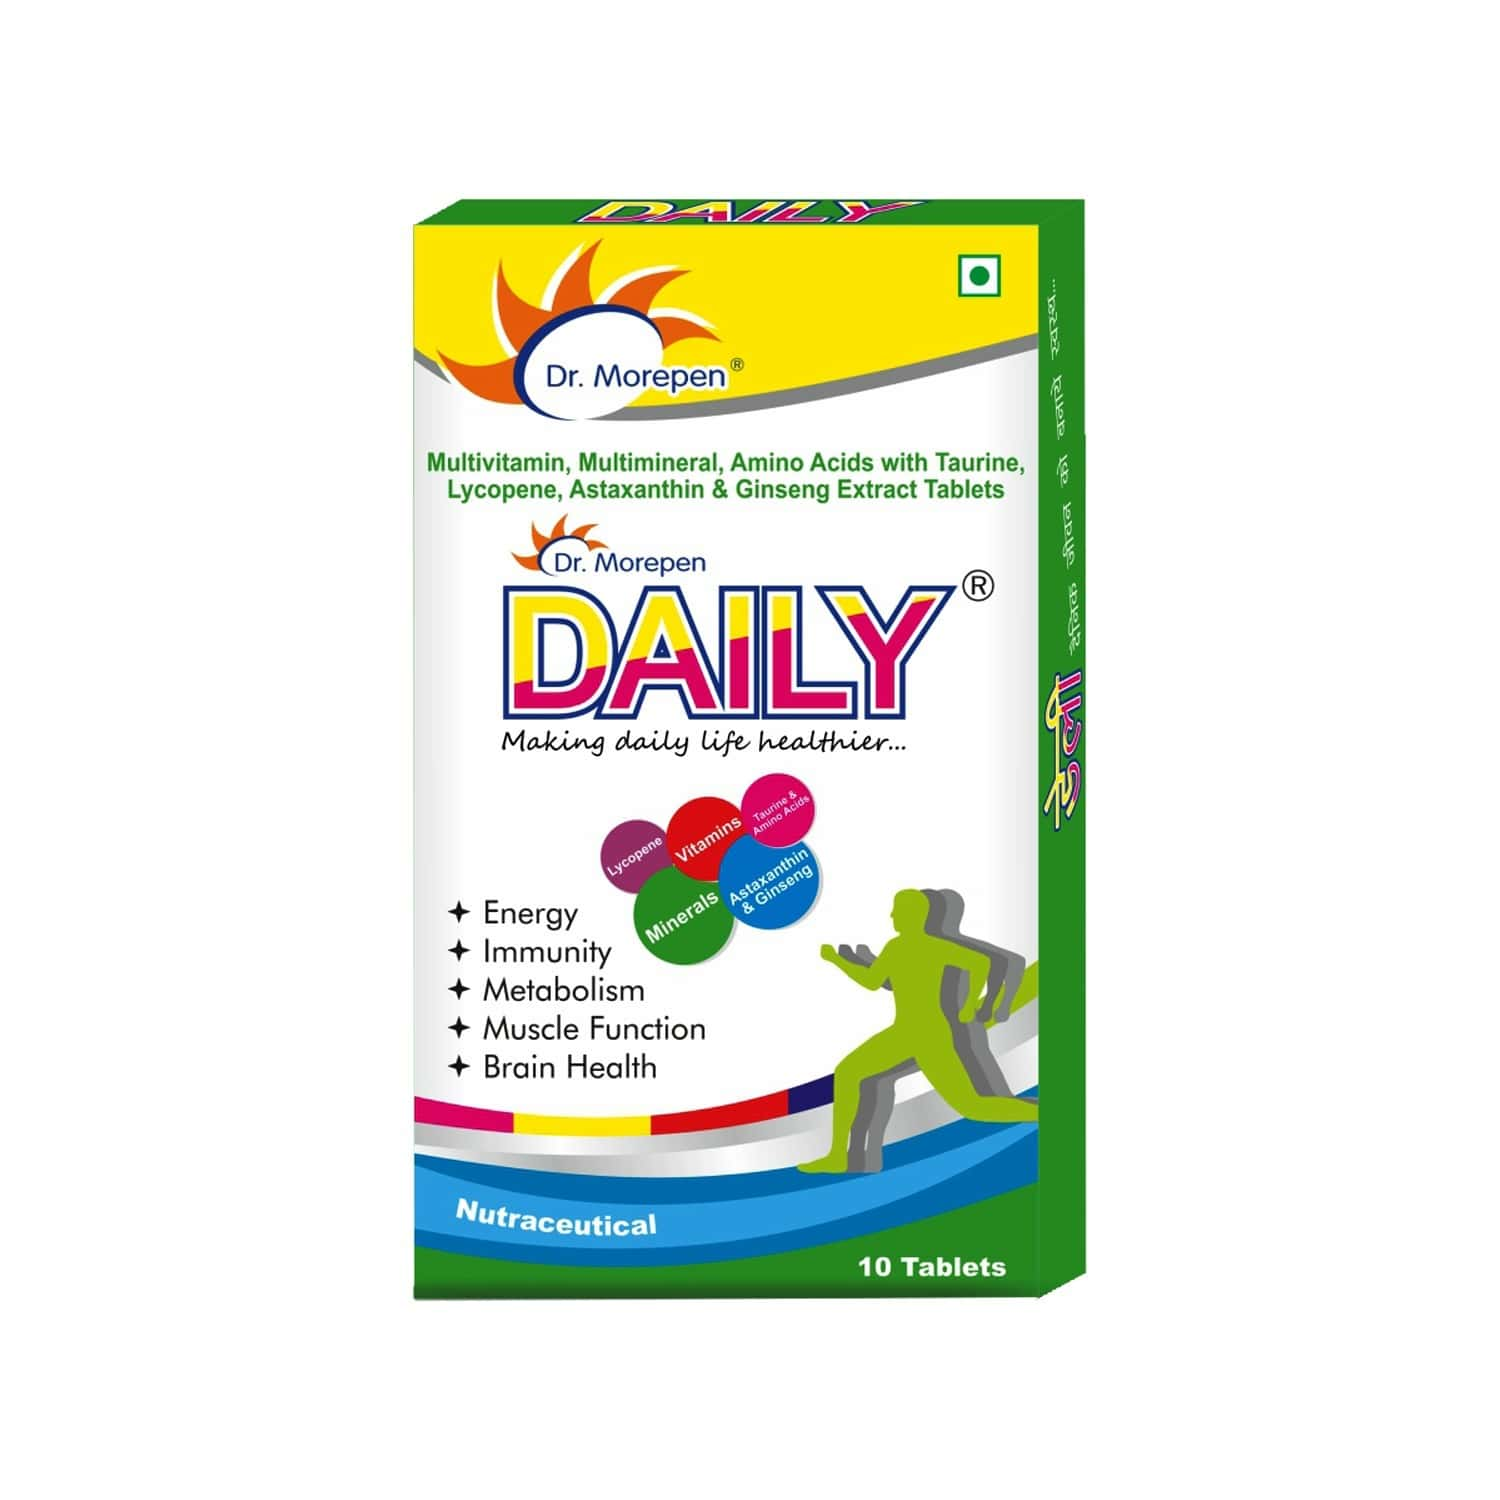 Dr. Morepen Daily Multivitamin Tablets (10 Tablets)